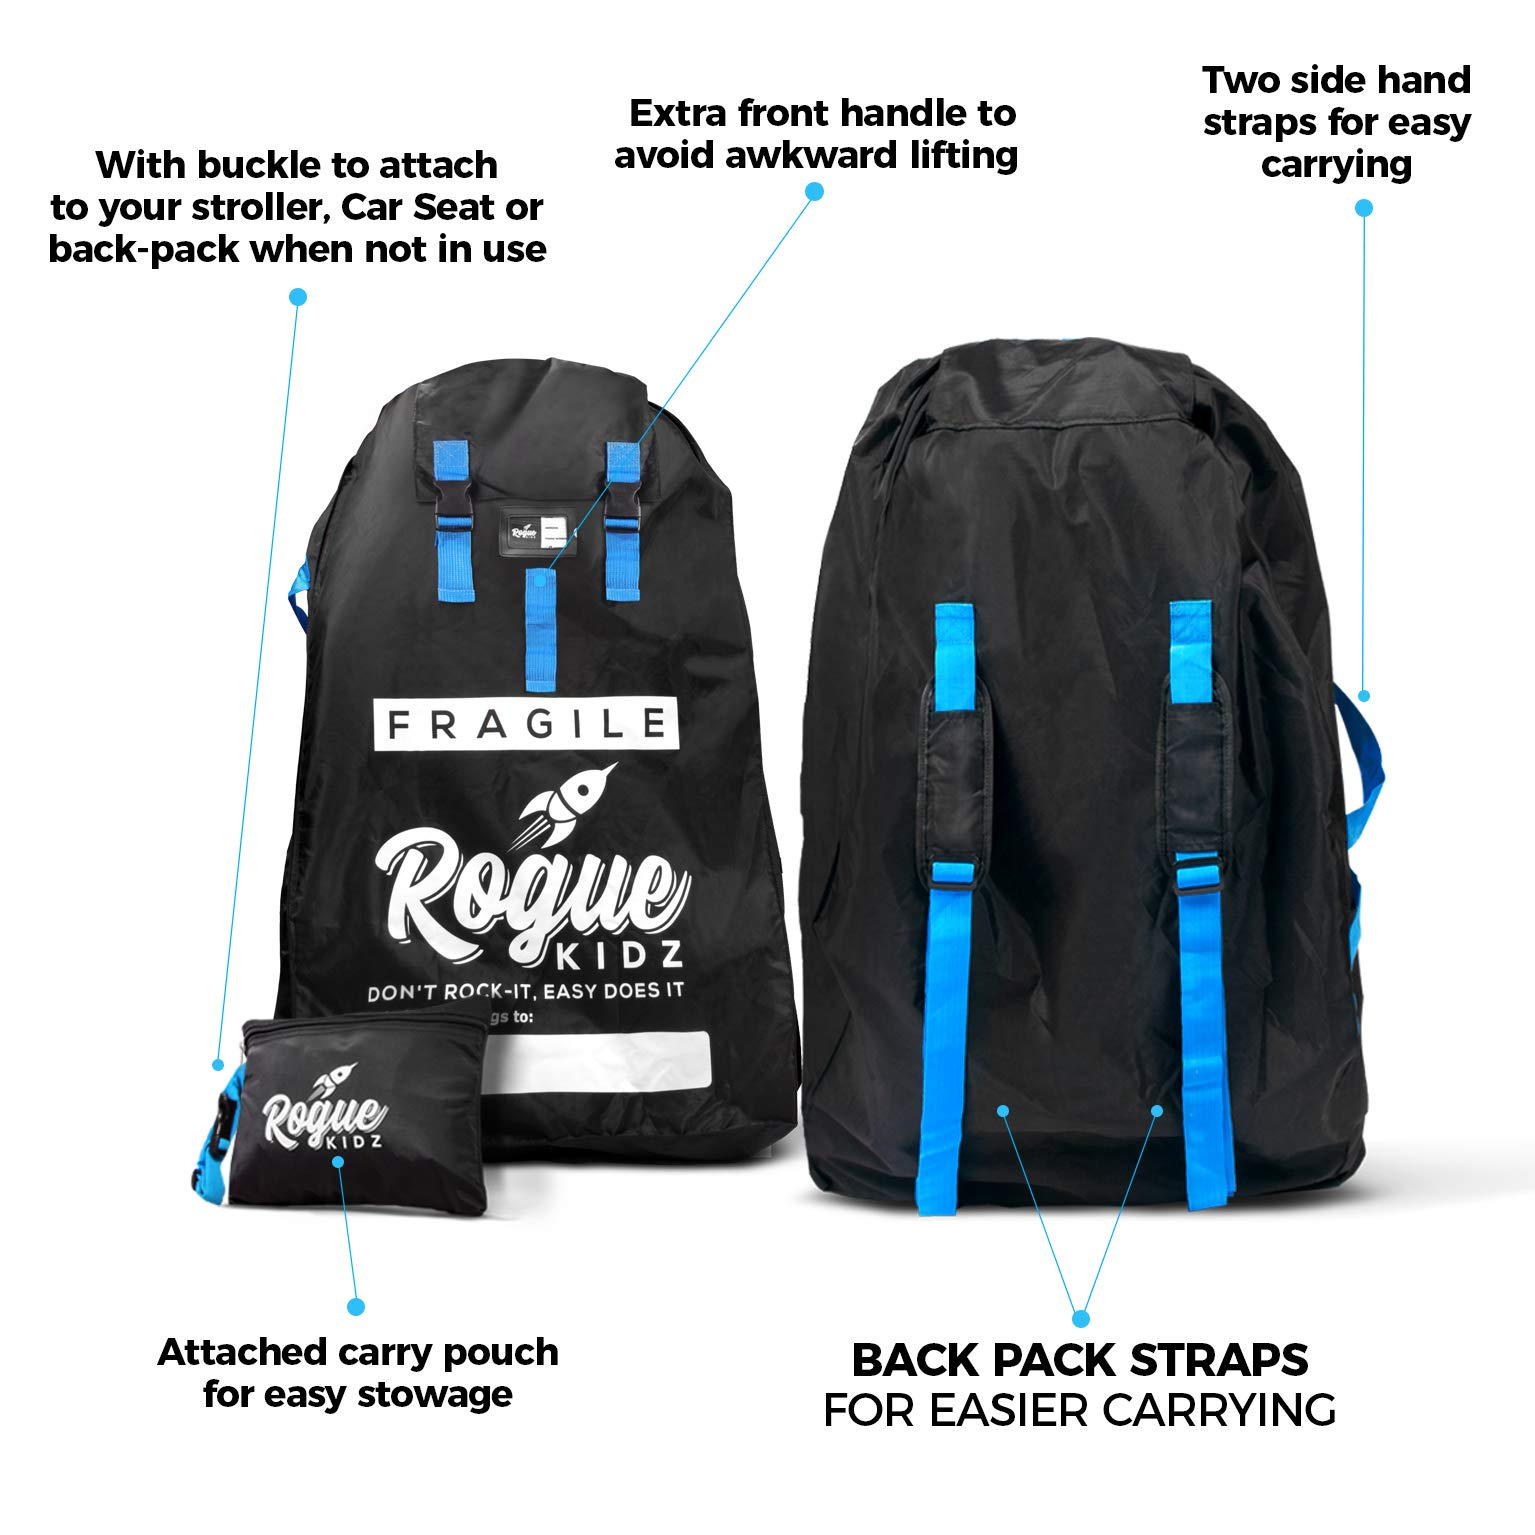 Rogue Kidz Single and Double Stroller Travel Bag For Airplane Gate Check - Durable Universal Large XL Cover With Padded Backpack Straps- Waterproof Heavy Duty Nylon Traveling Protector With Carry Case by Rogue Kidz (Image #4)